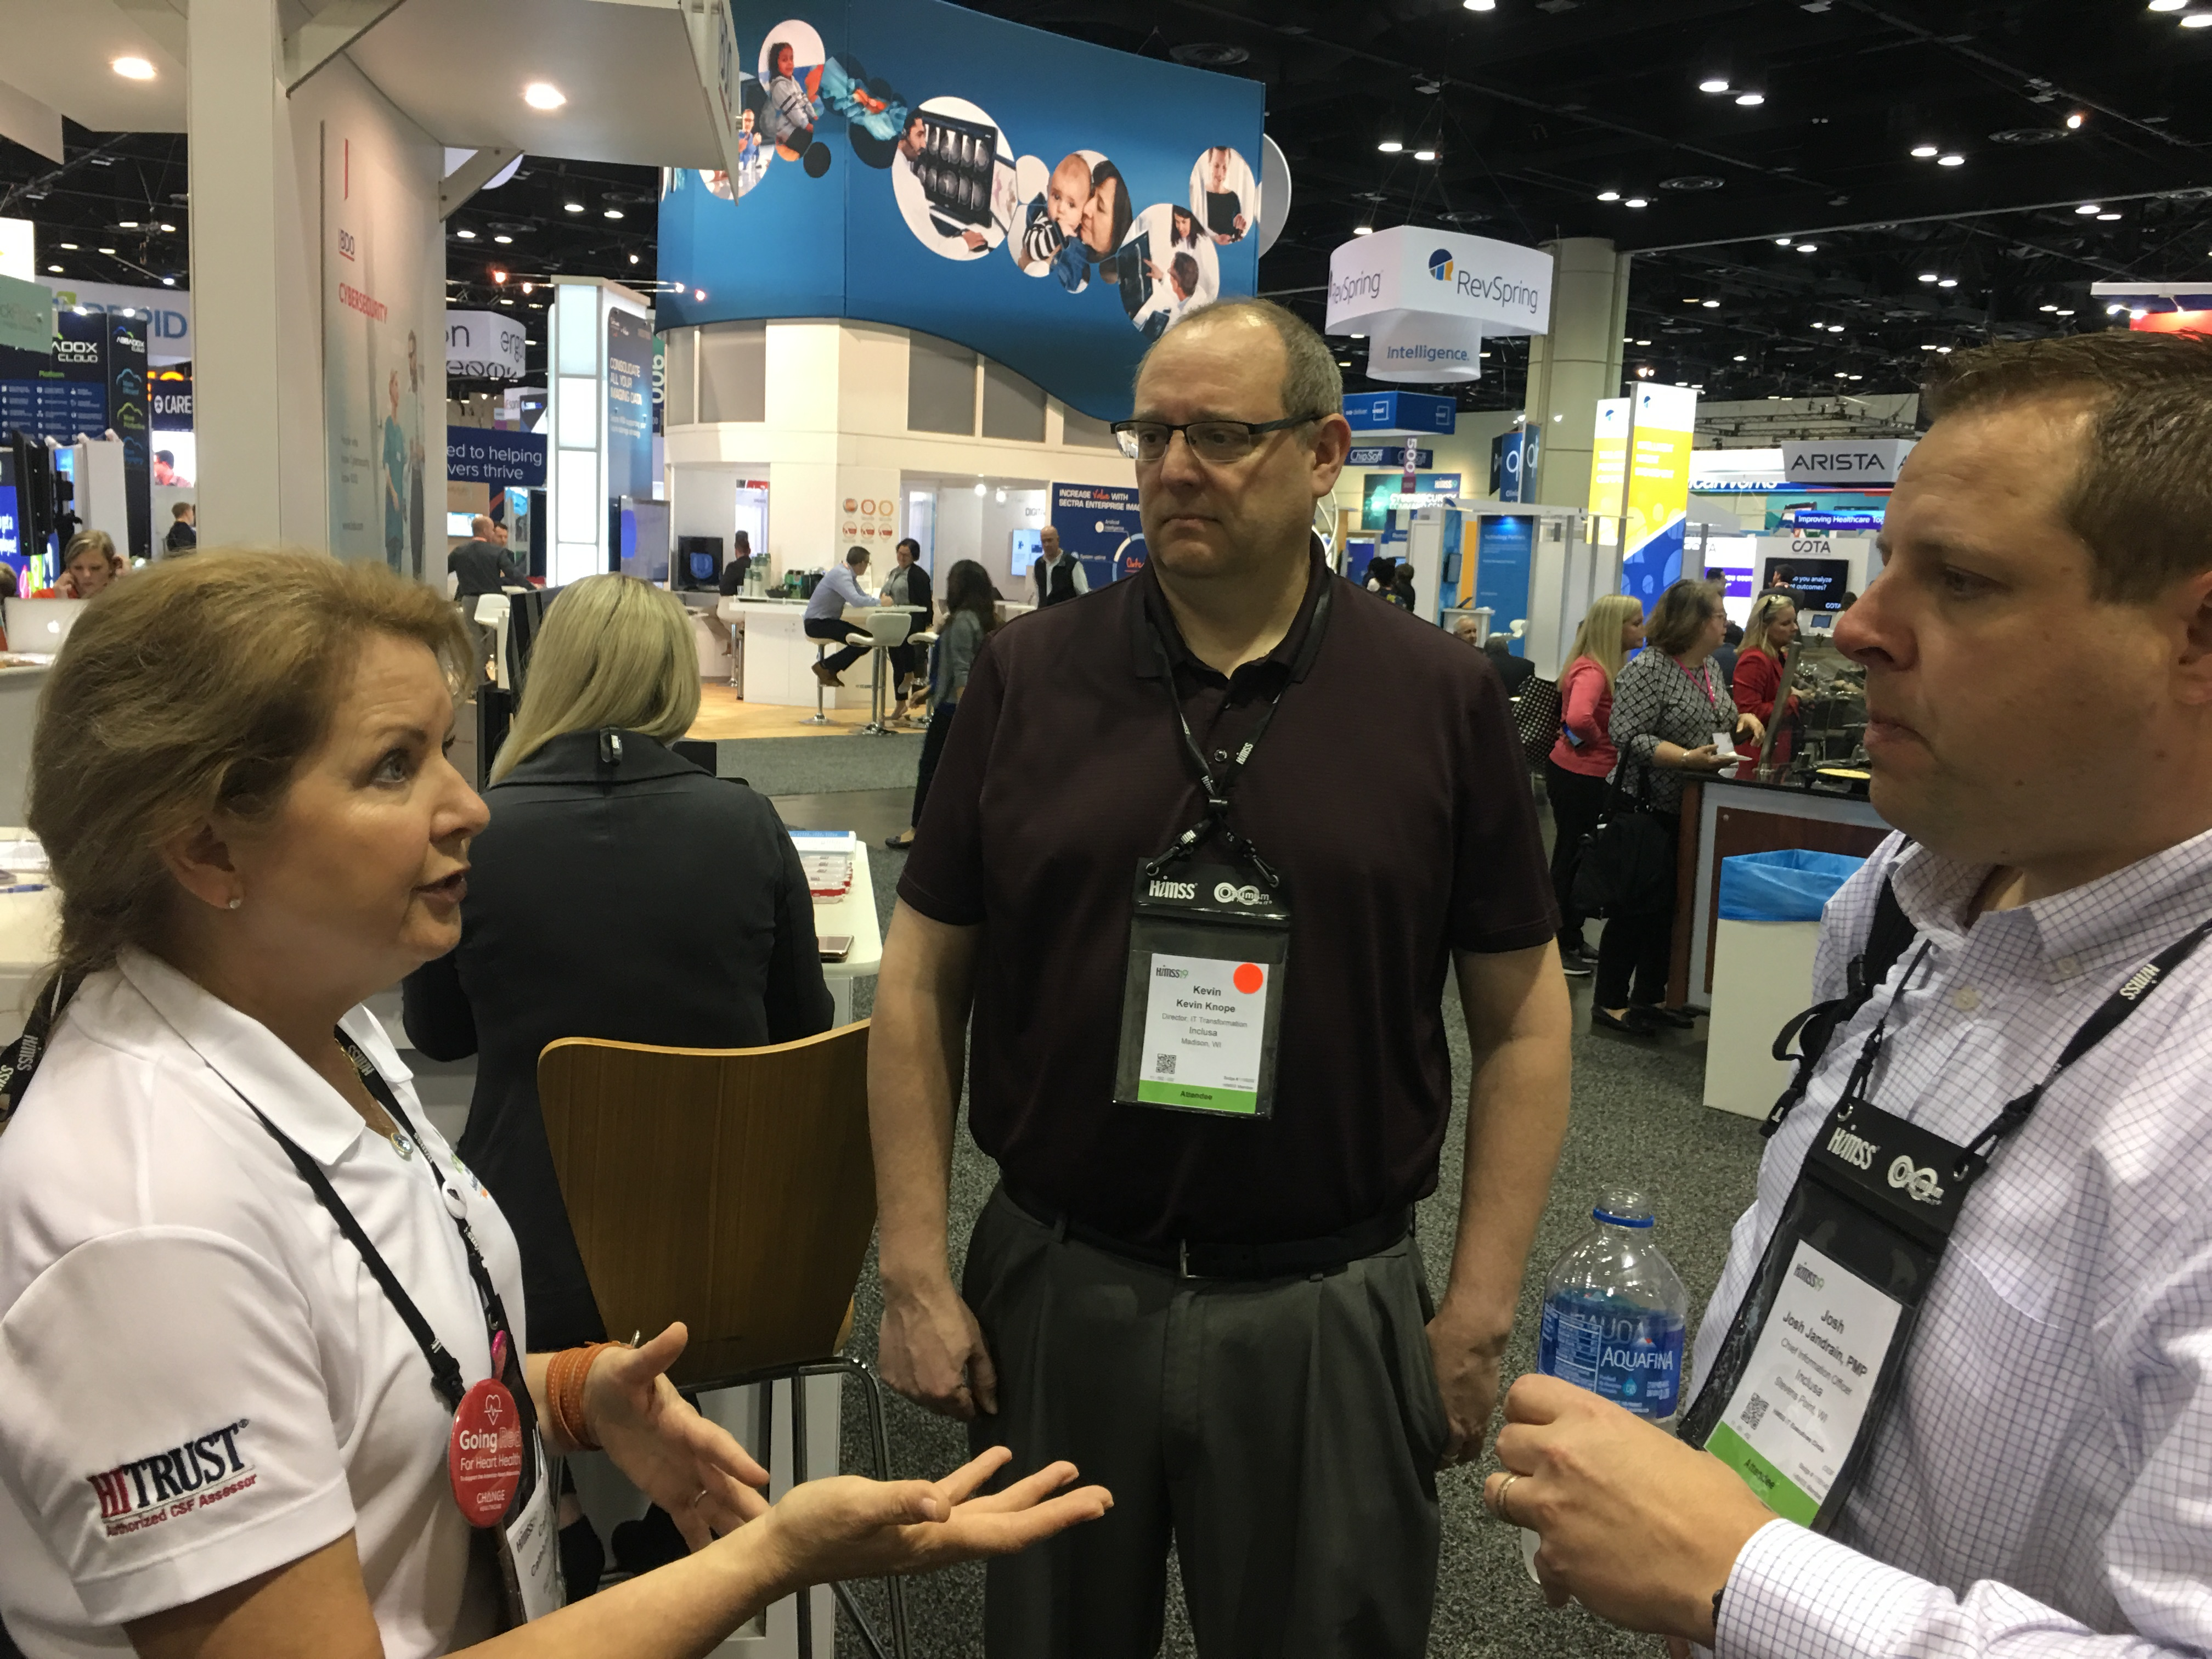 Cathlynn Nigh, Kevin Knope, and Josh Jandrain | HIMSS19 Orlando